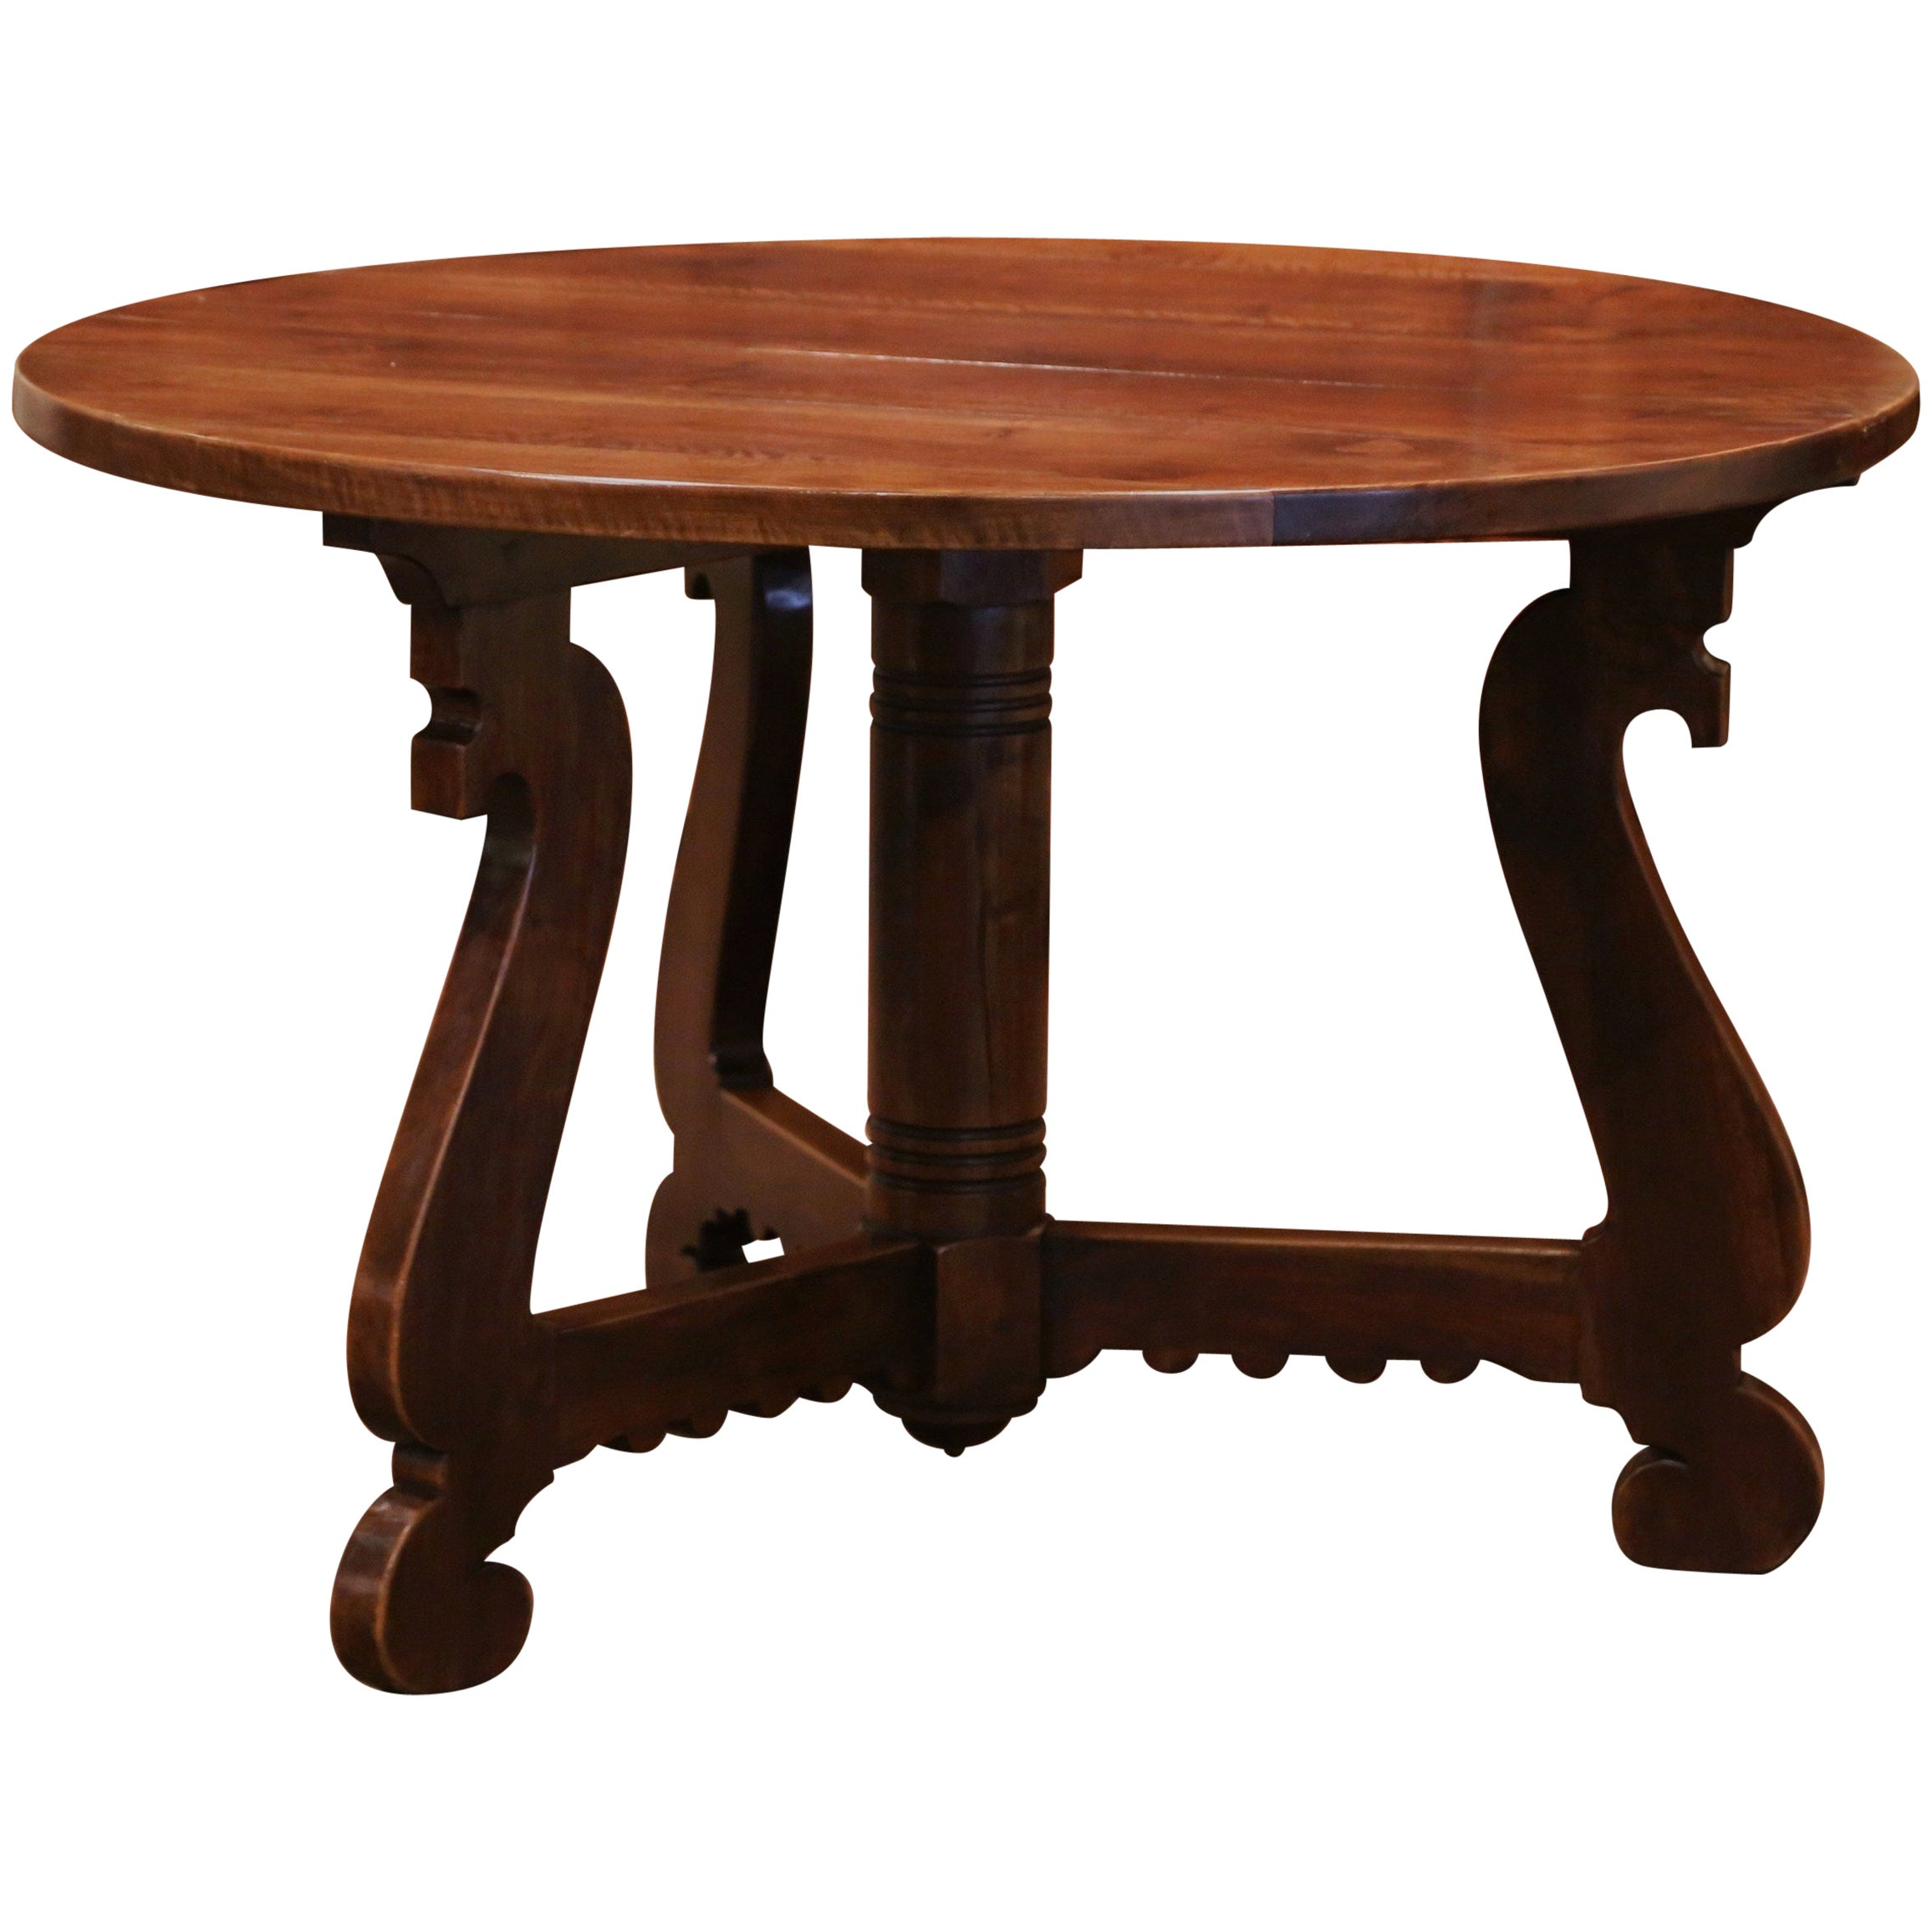 Mid-Century French Catalan Carved Walnut Round Breakfast or Center Table